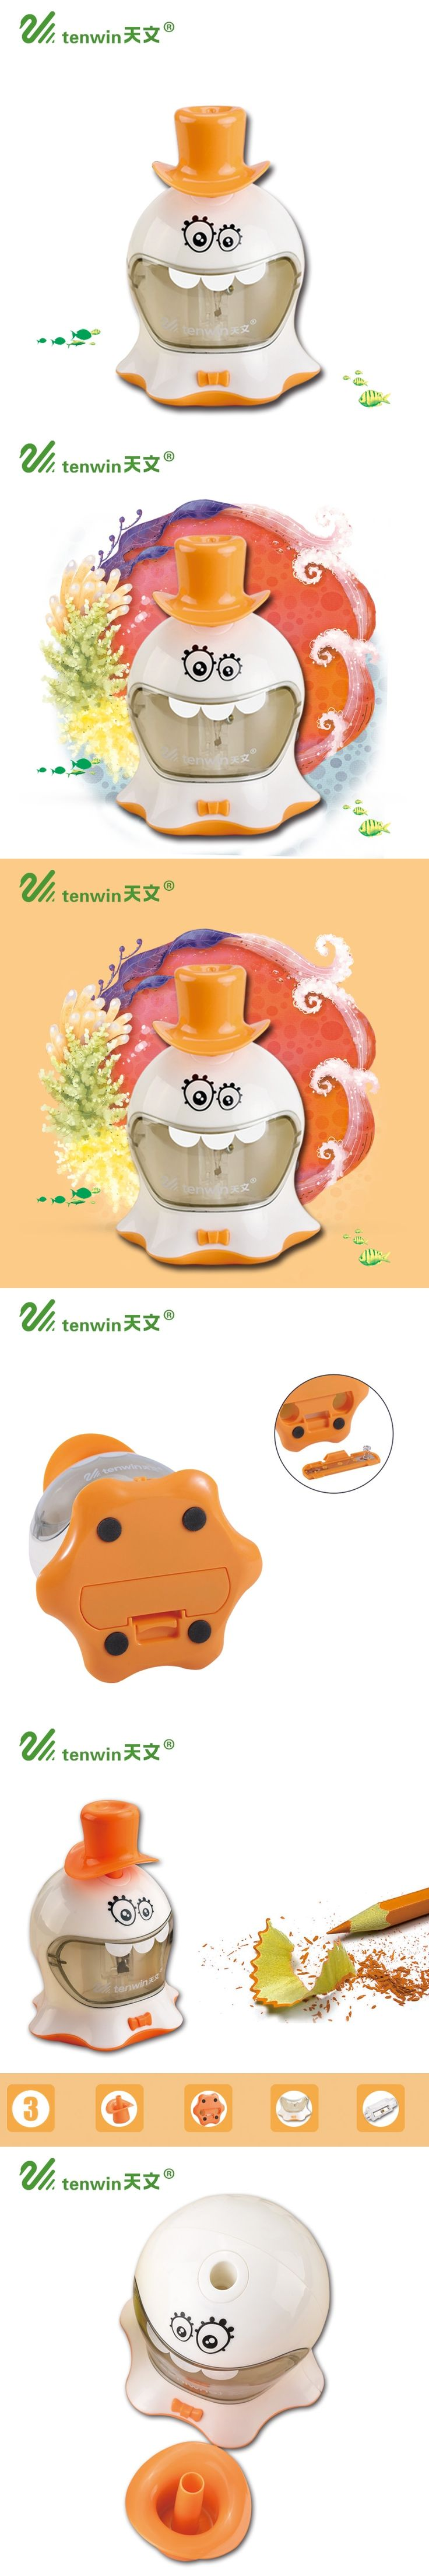 Electric Pencil Sharpener One Hole Cute Electric Pencil Sharpener Apply To Pencil Of 6-8mm